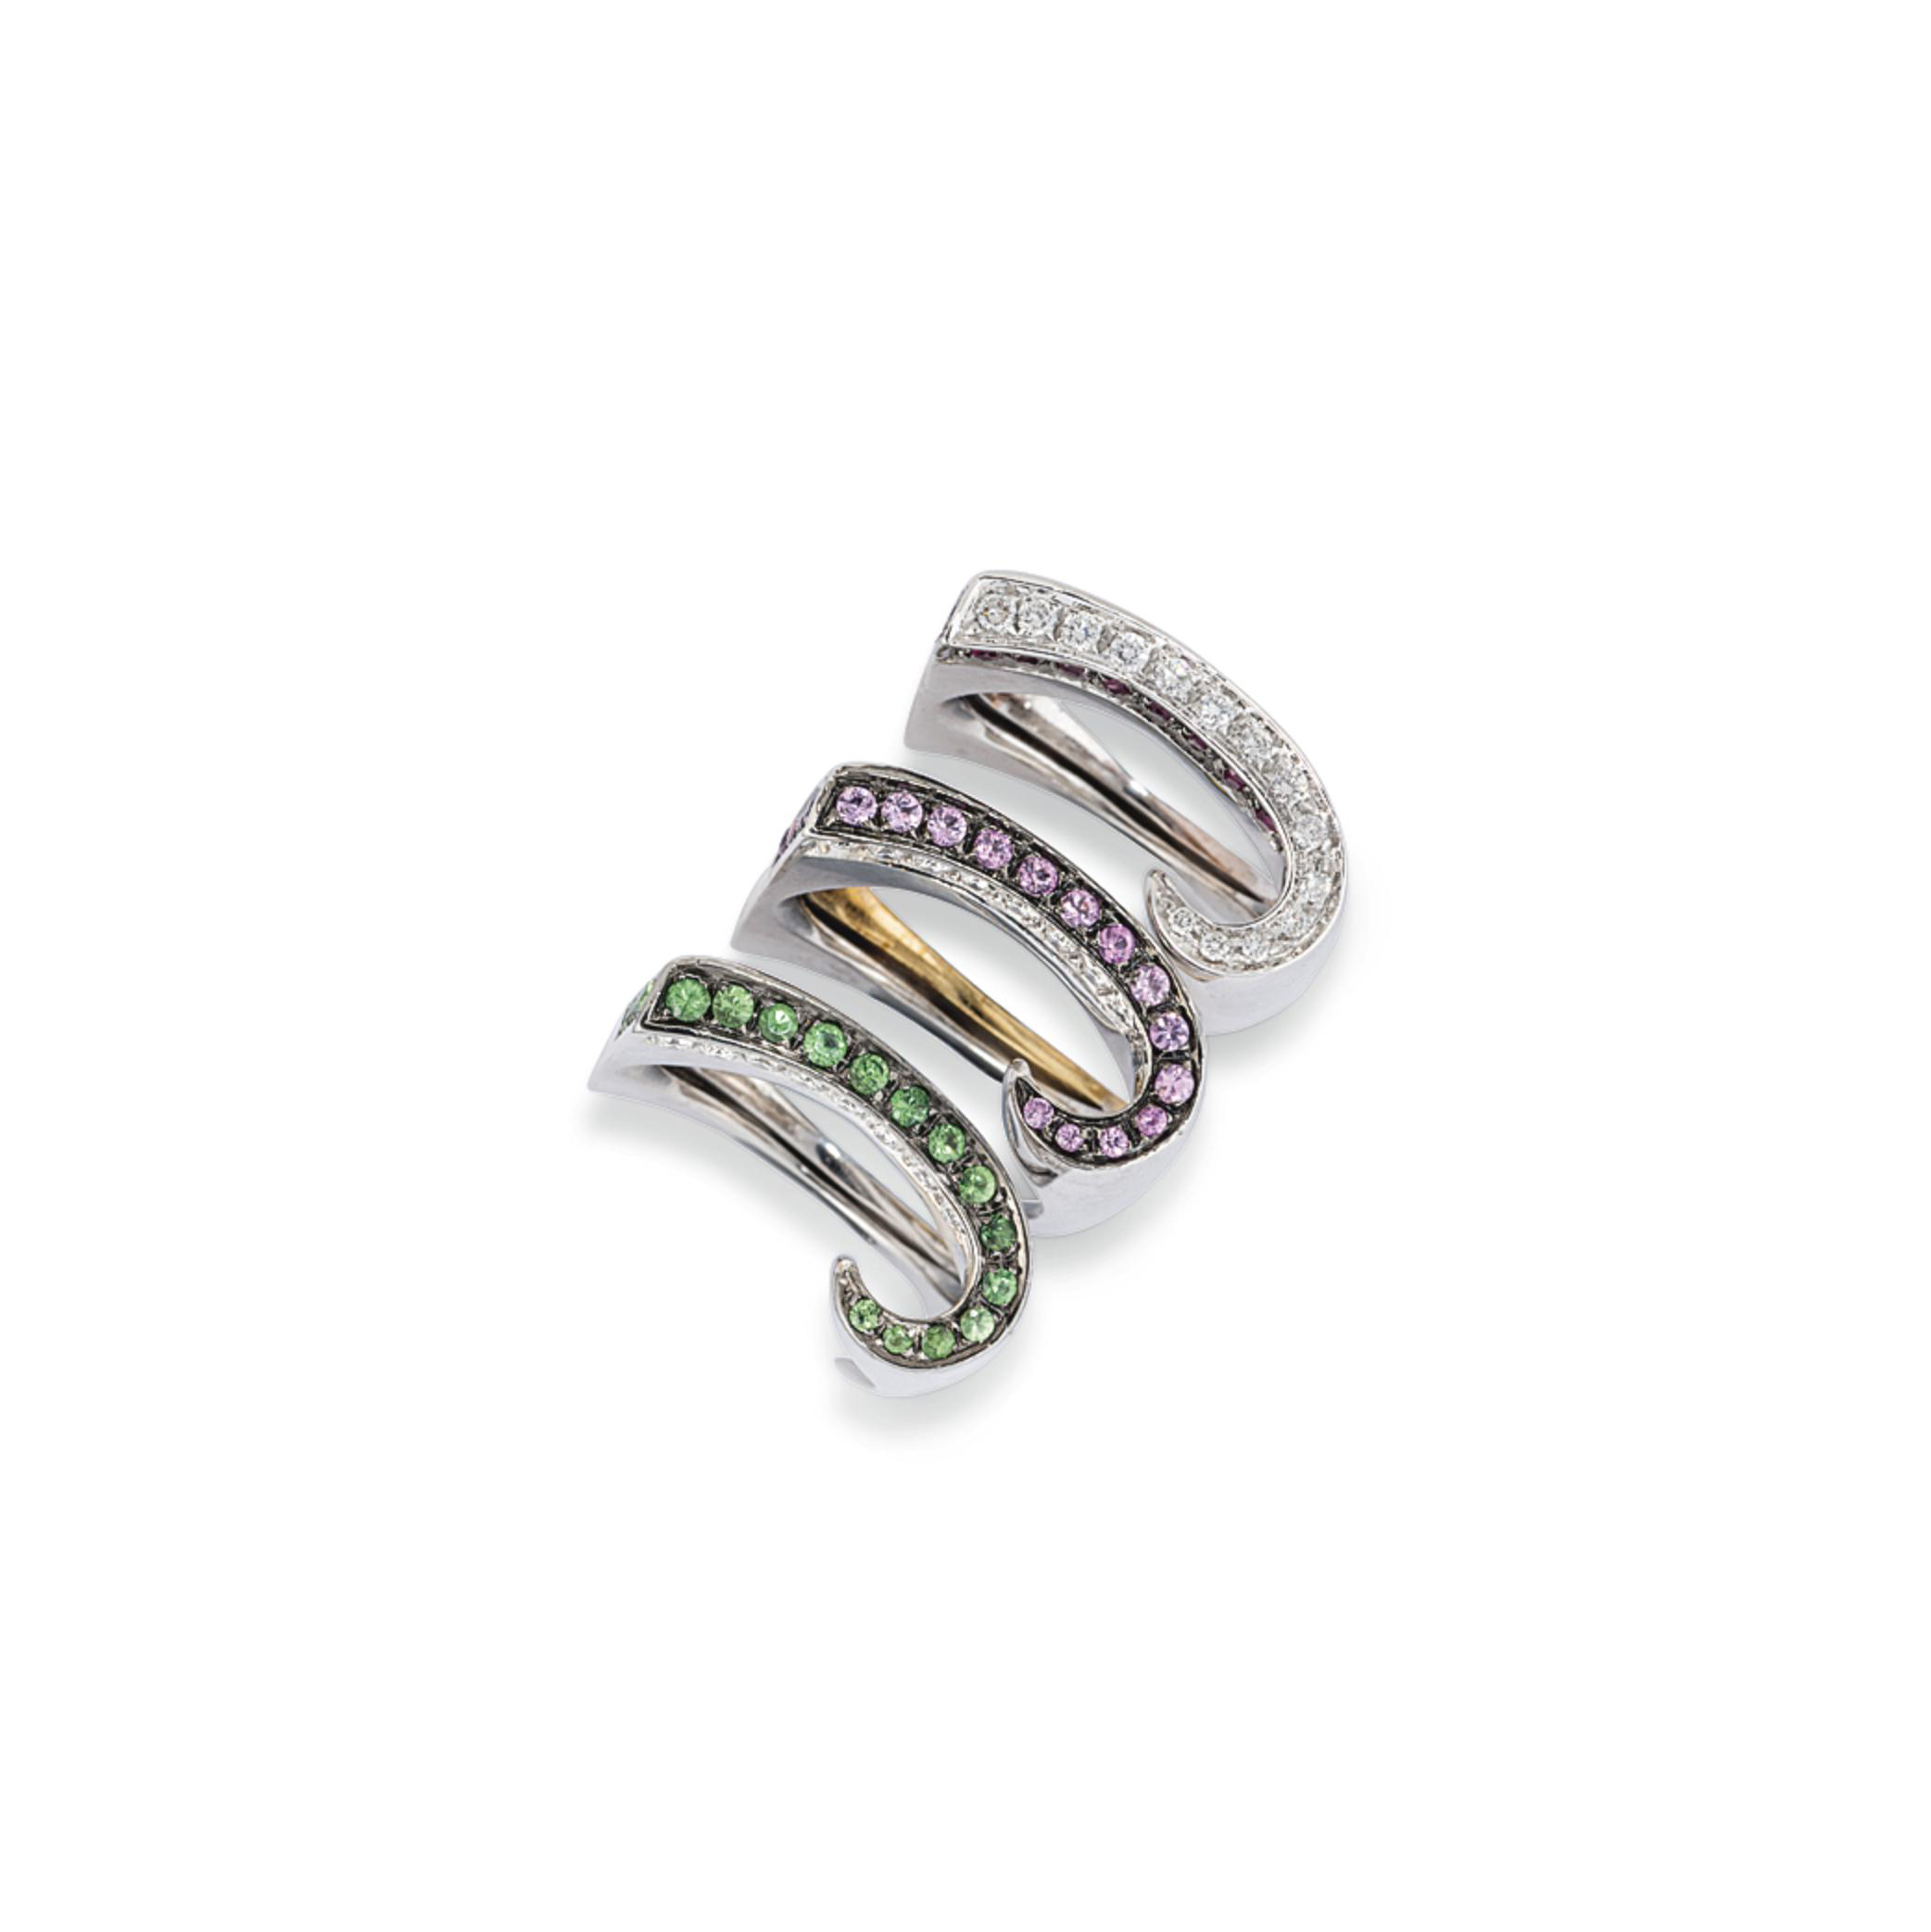 SIX DIAMOND AND GEM-SET RINGS